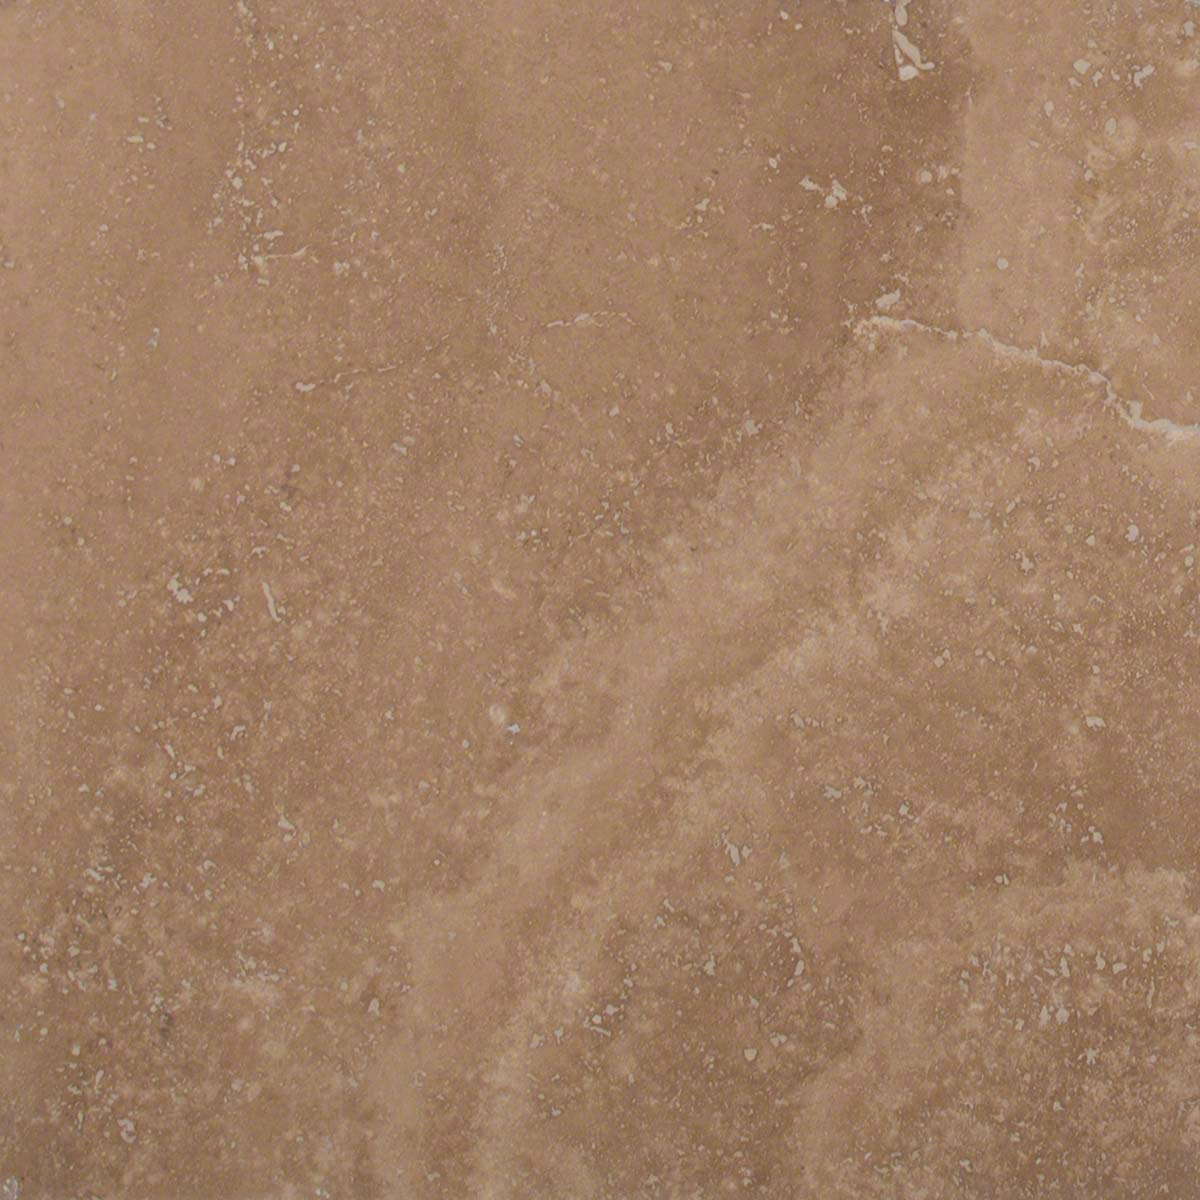 MS International Travertine 18 x 18 Honed Filled Caramel